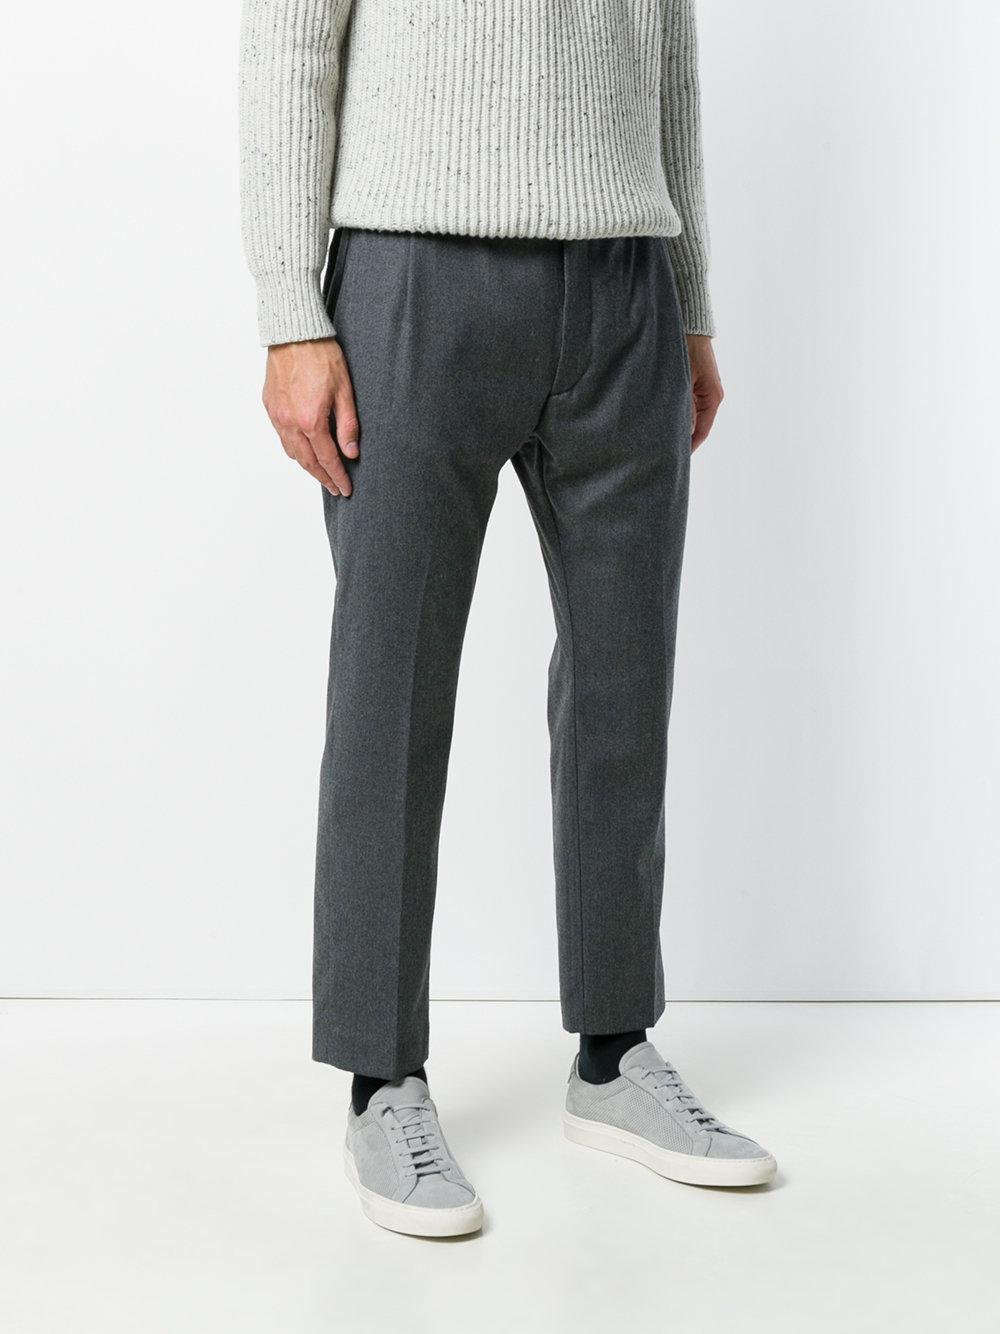 Pence Wool Pleated Trousers in Grey (Grey) for Men